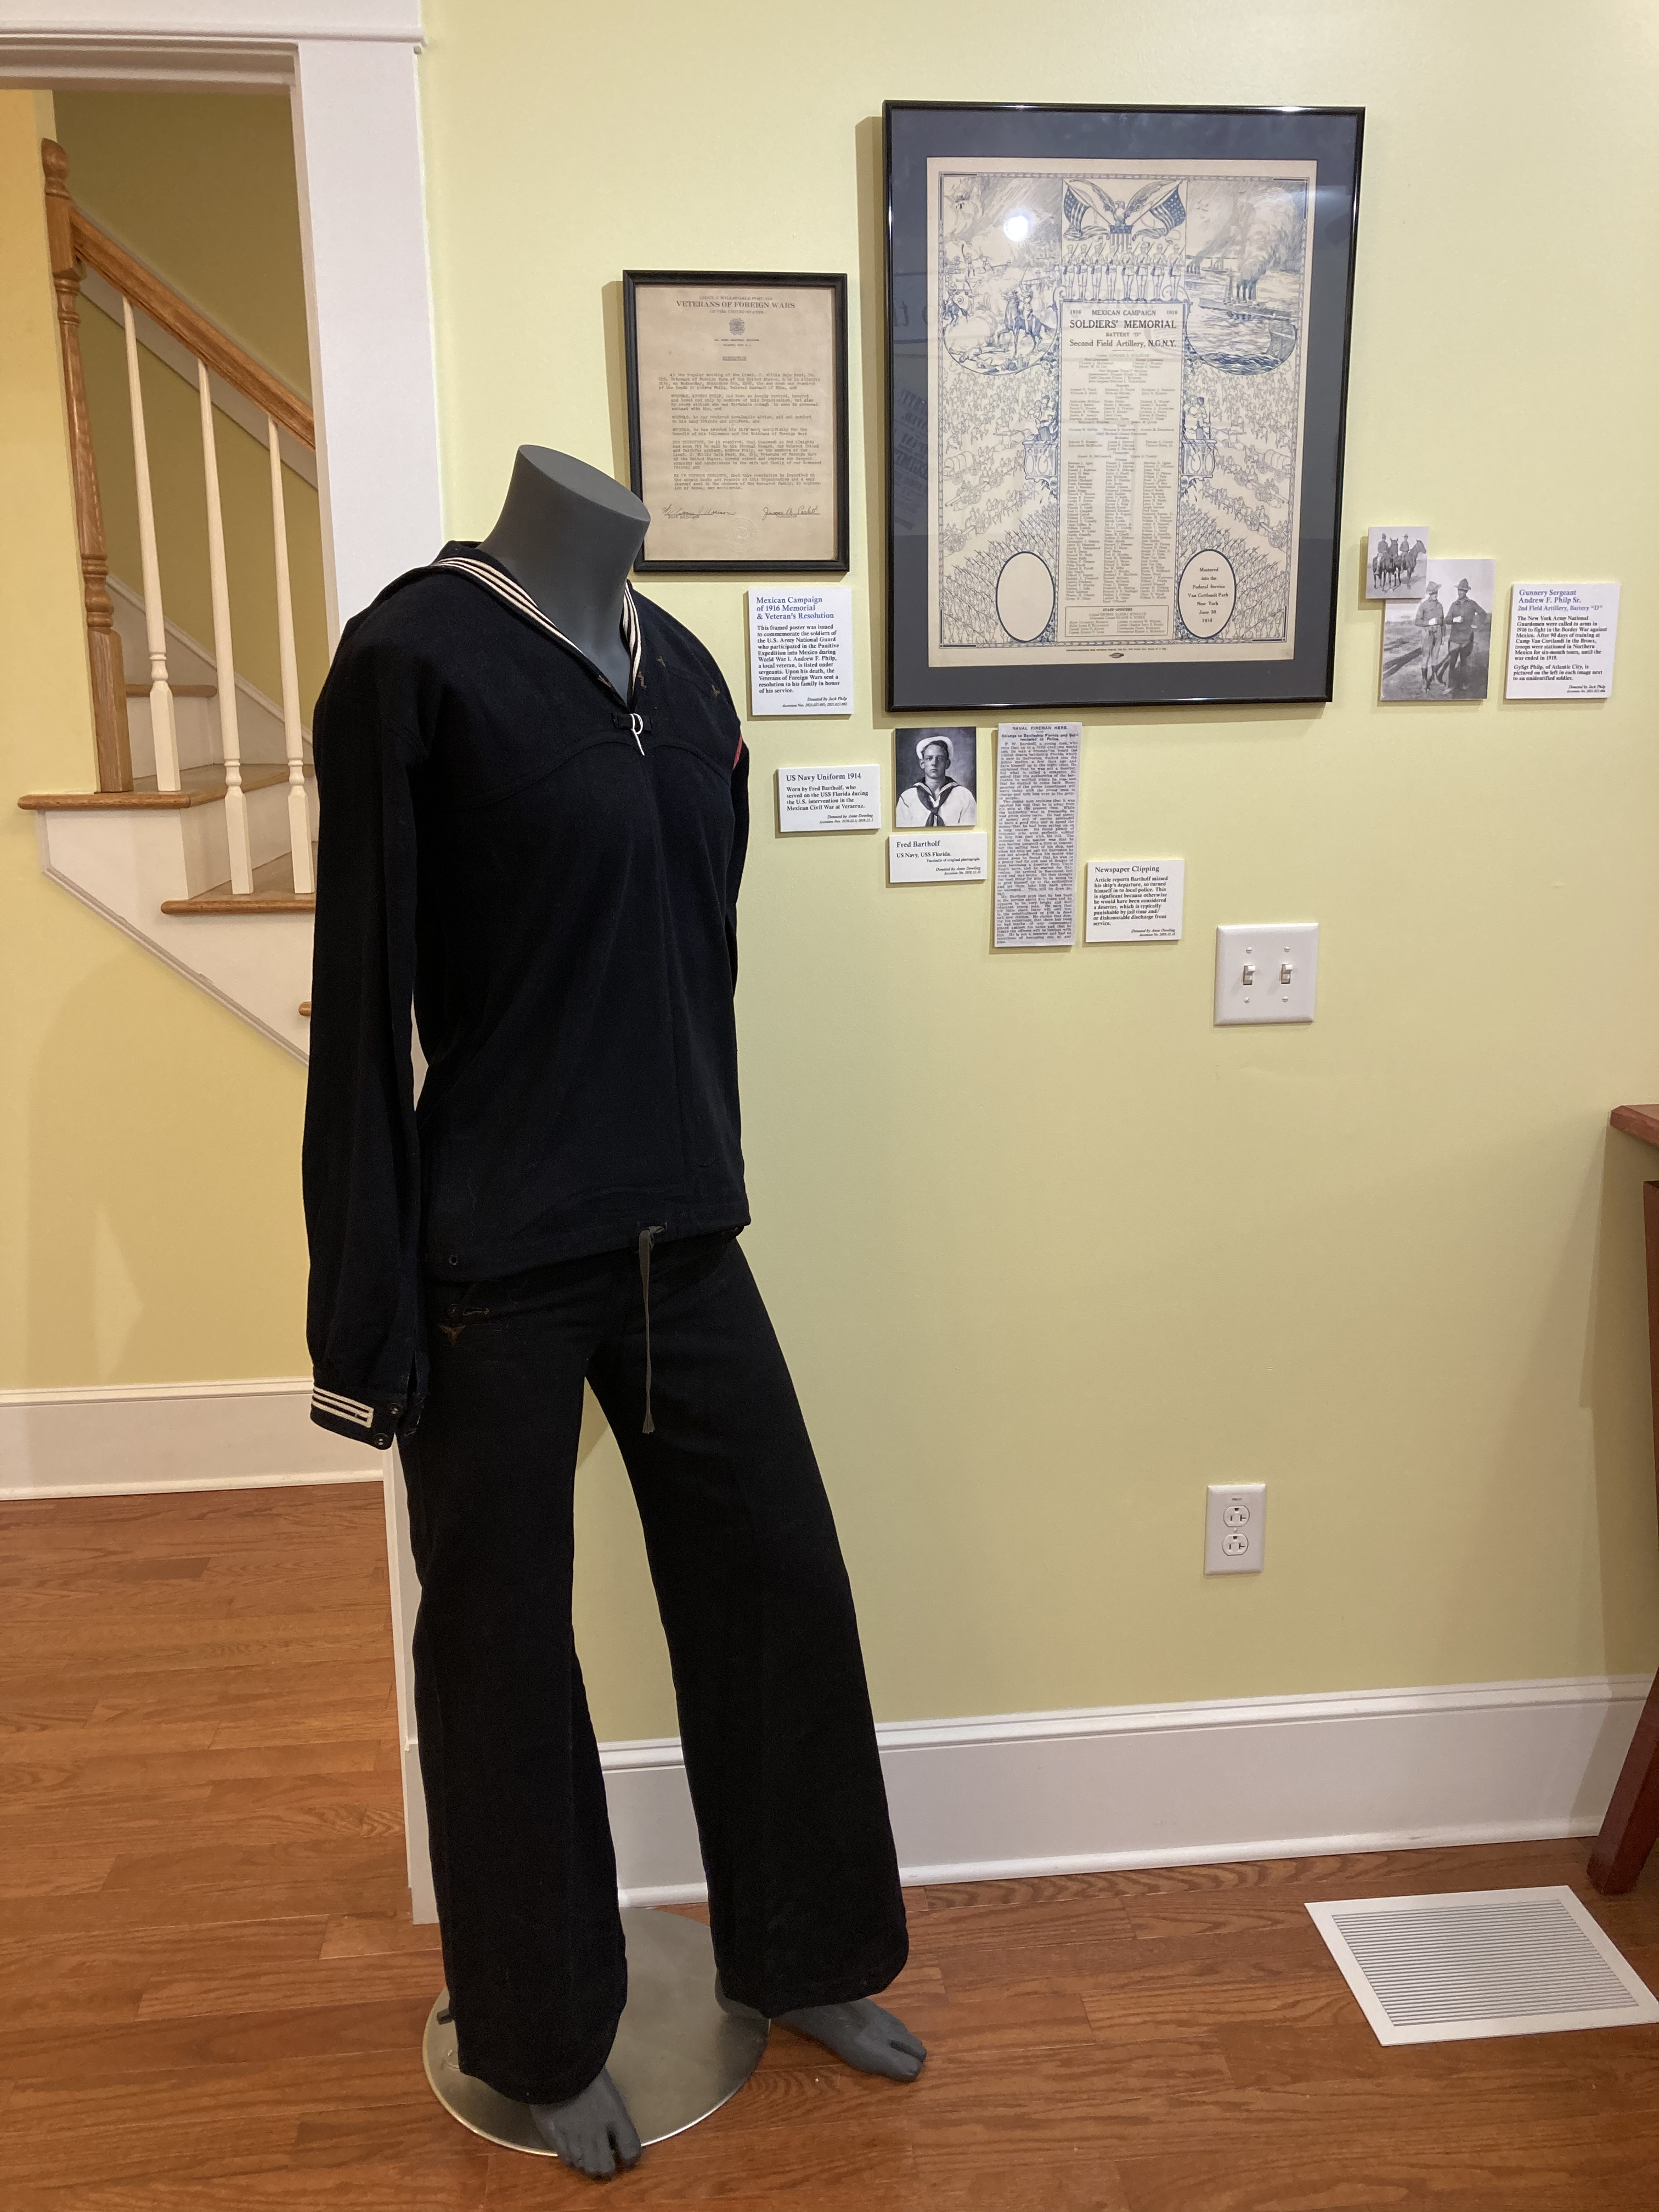 1914 US Navy uniform on mannequin, with wall display of documents behind it.